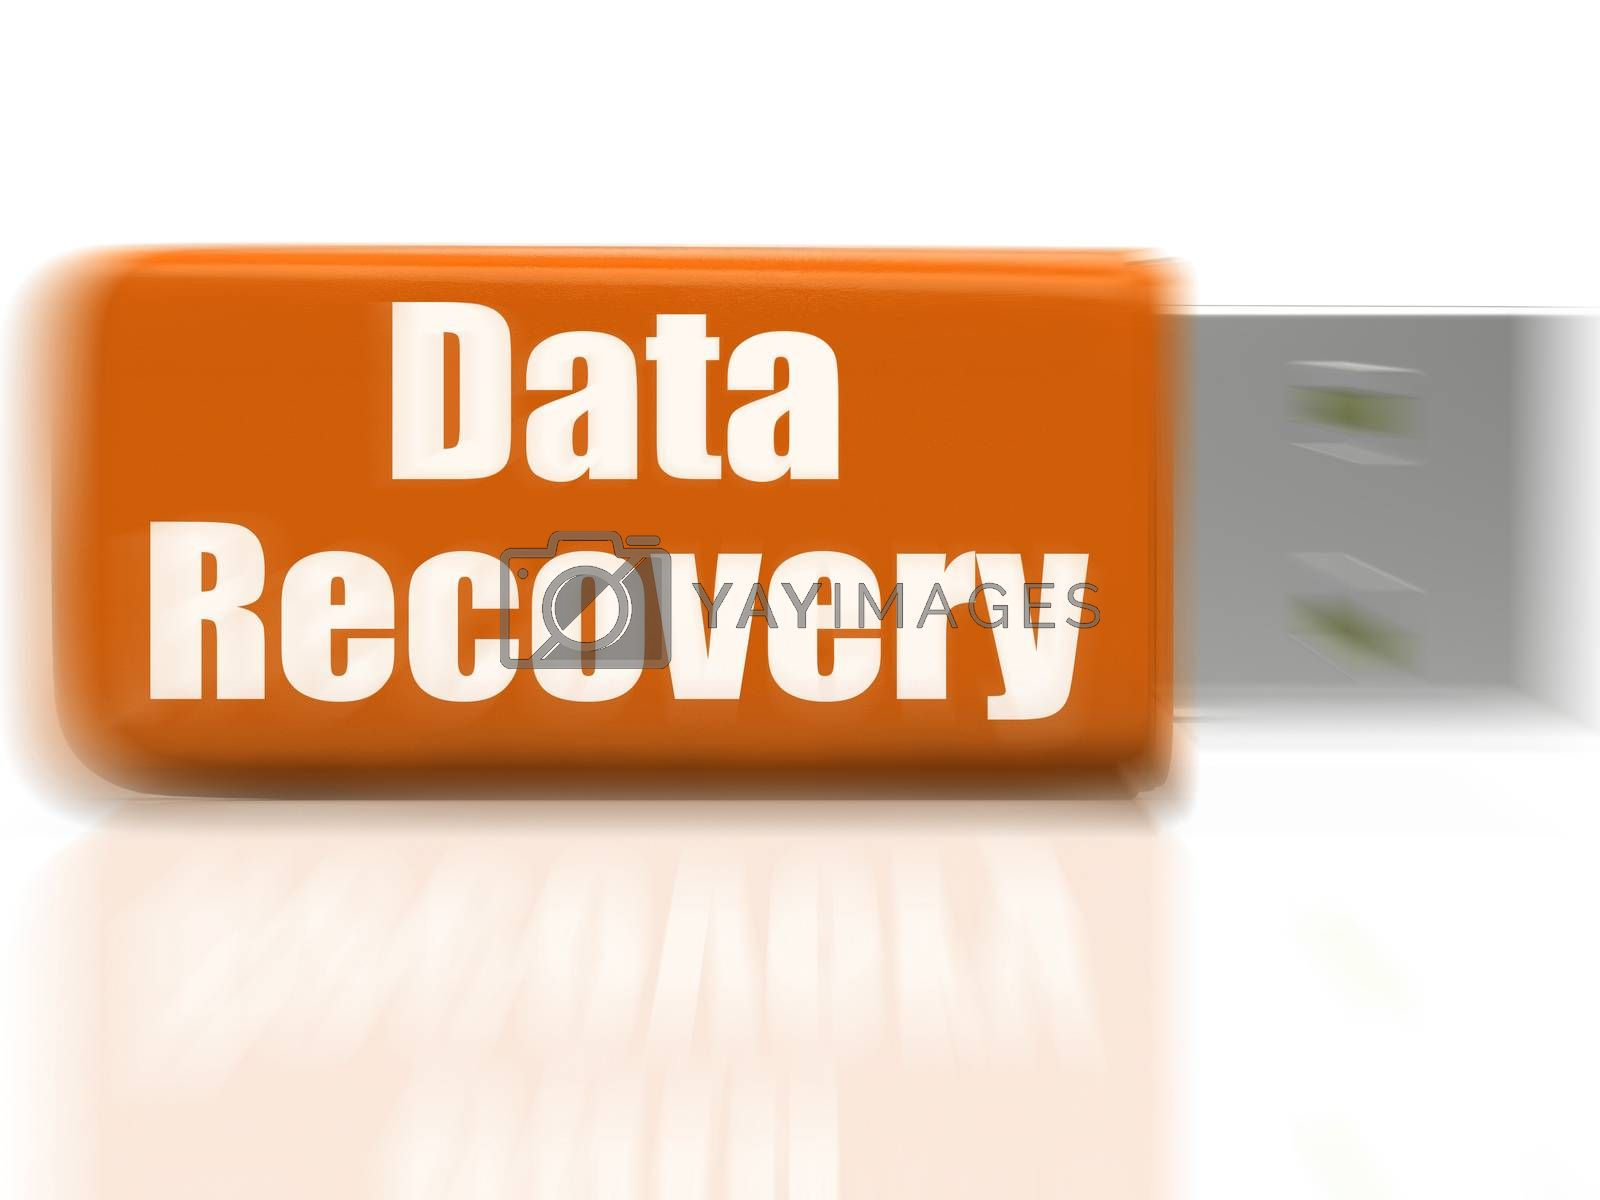 Data Recovery USB drive Means Safe Files Transfer Or Data Recove by stuartmiles